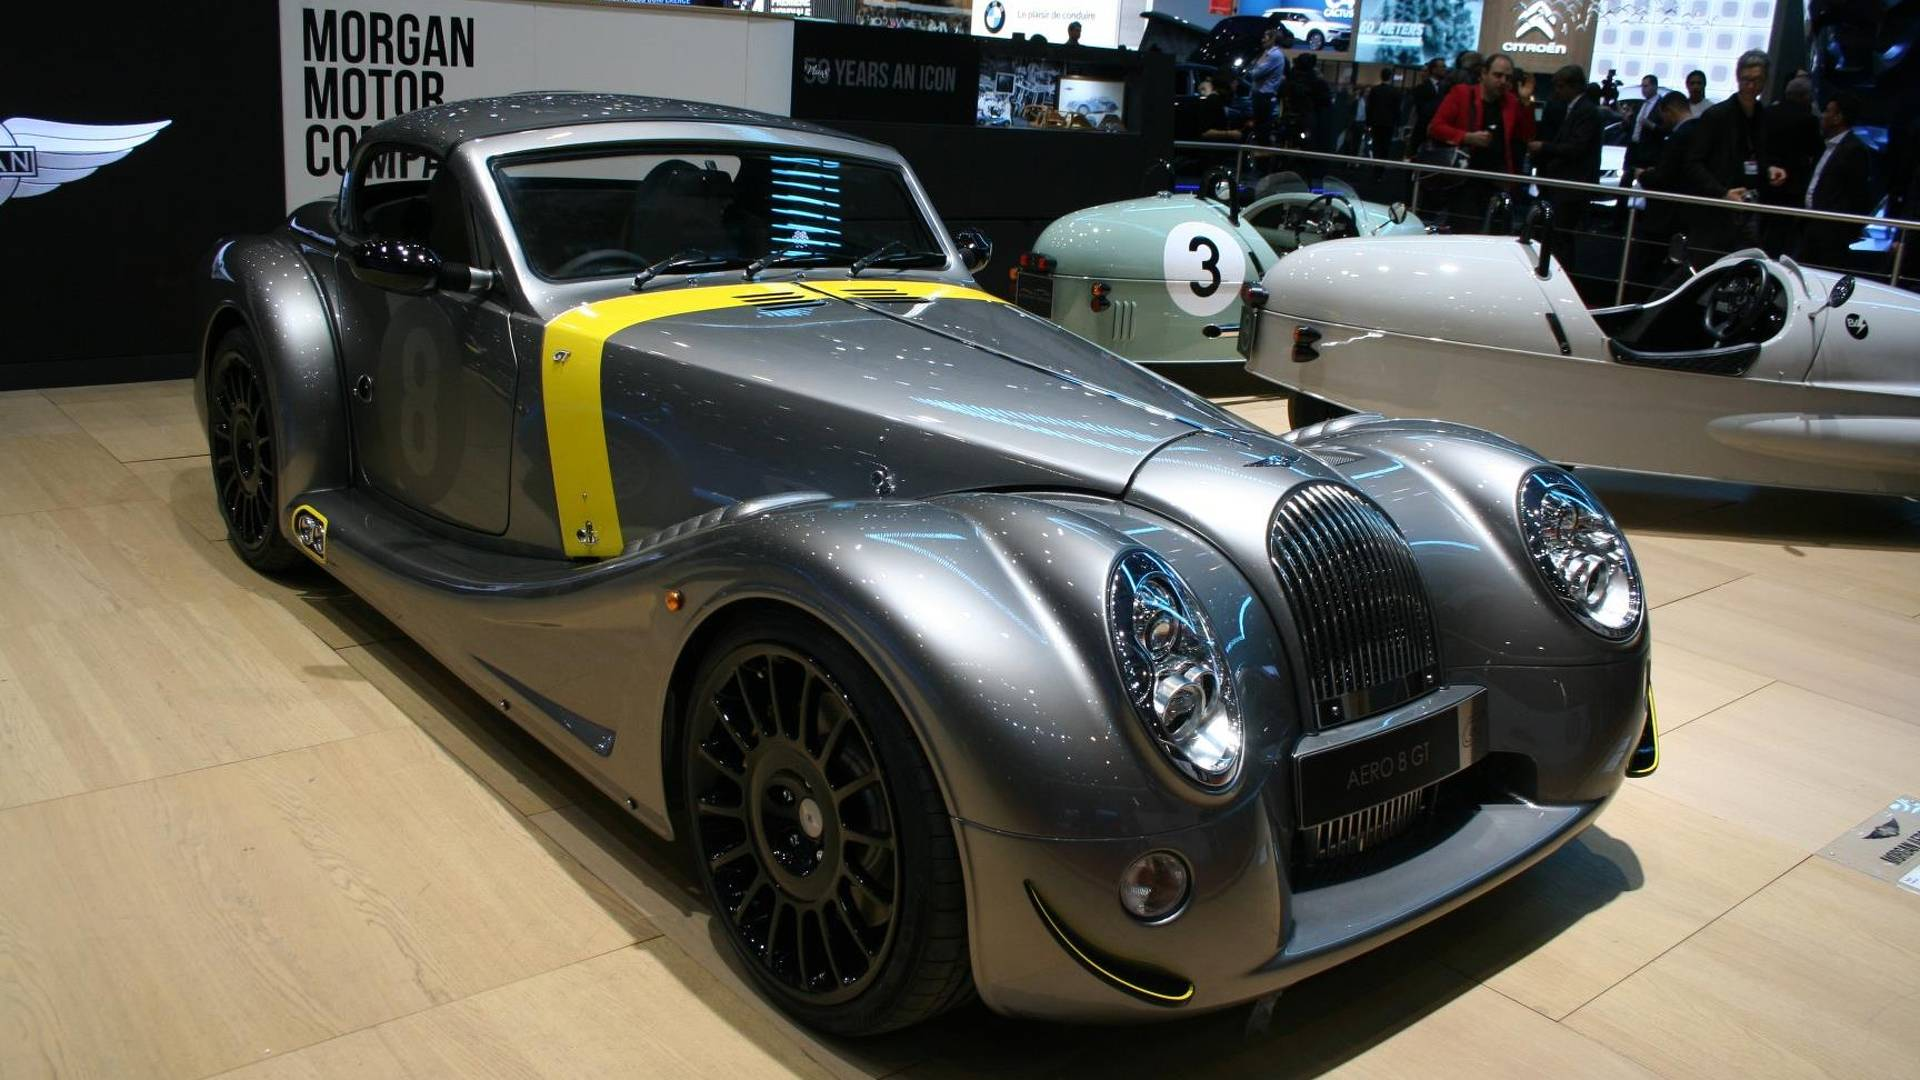 Morgan Aero Gt Is The Company S Most Extreme Road Car Ever